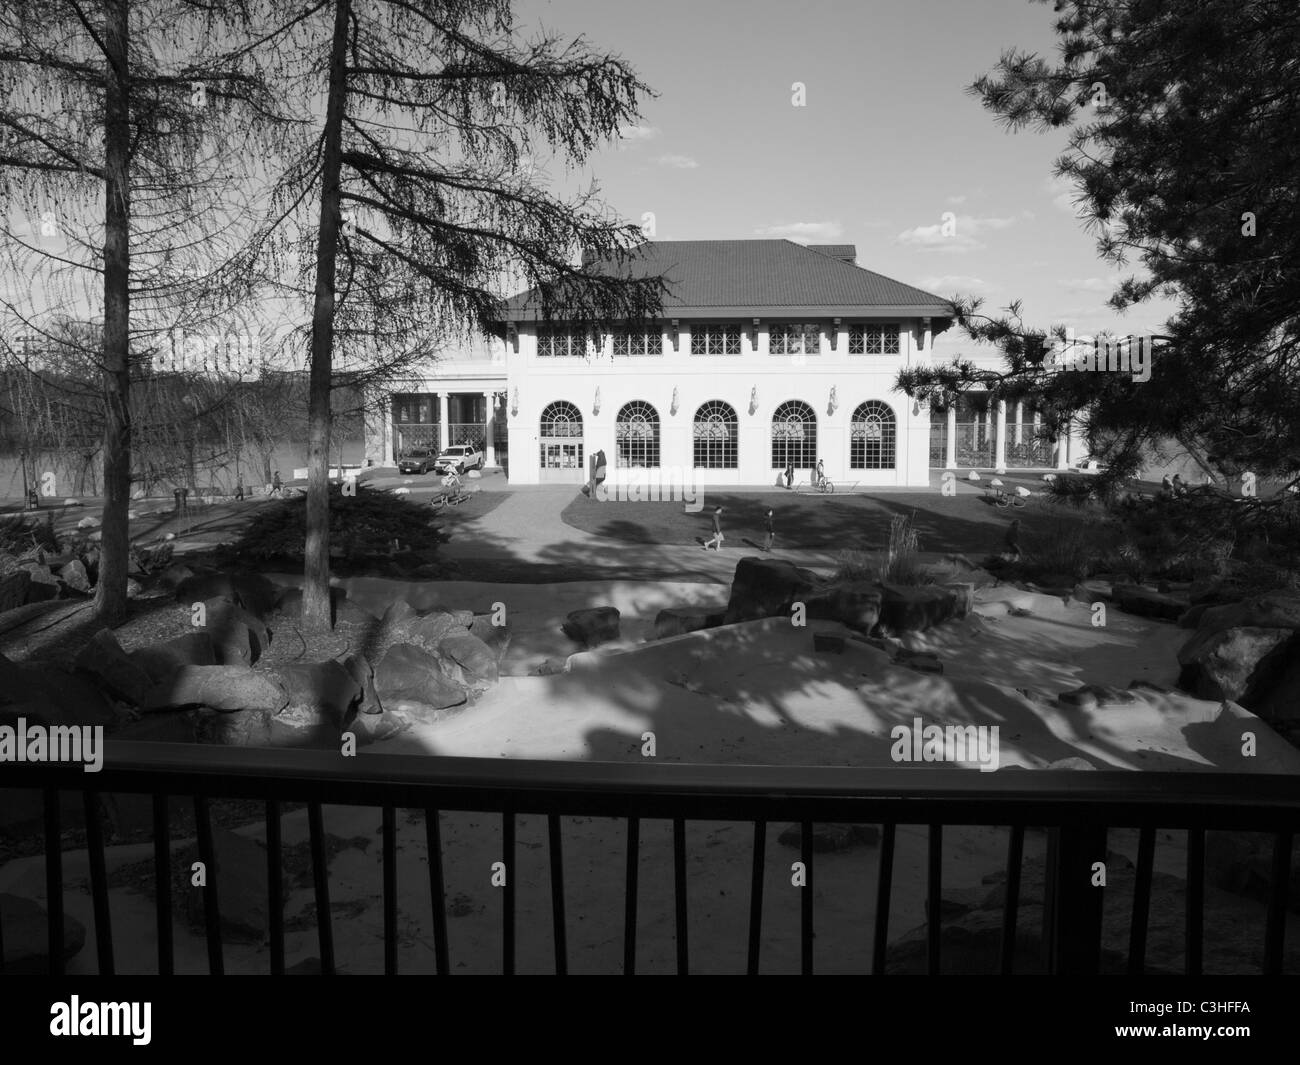 view of Lake Como pavilion from Hamm Memorial water fall in Como Park, St. Paul, MN, USA - Stock Image